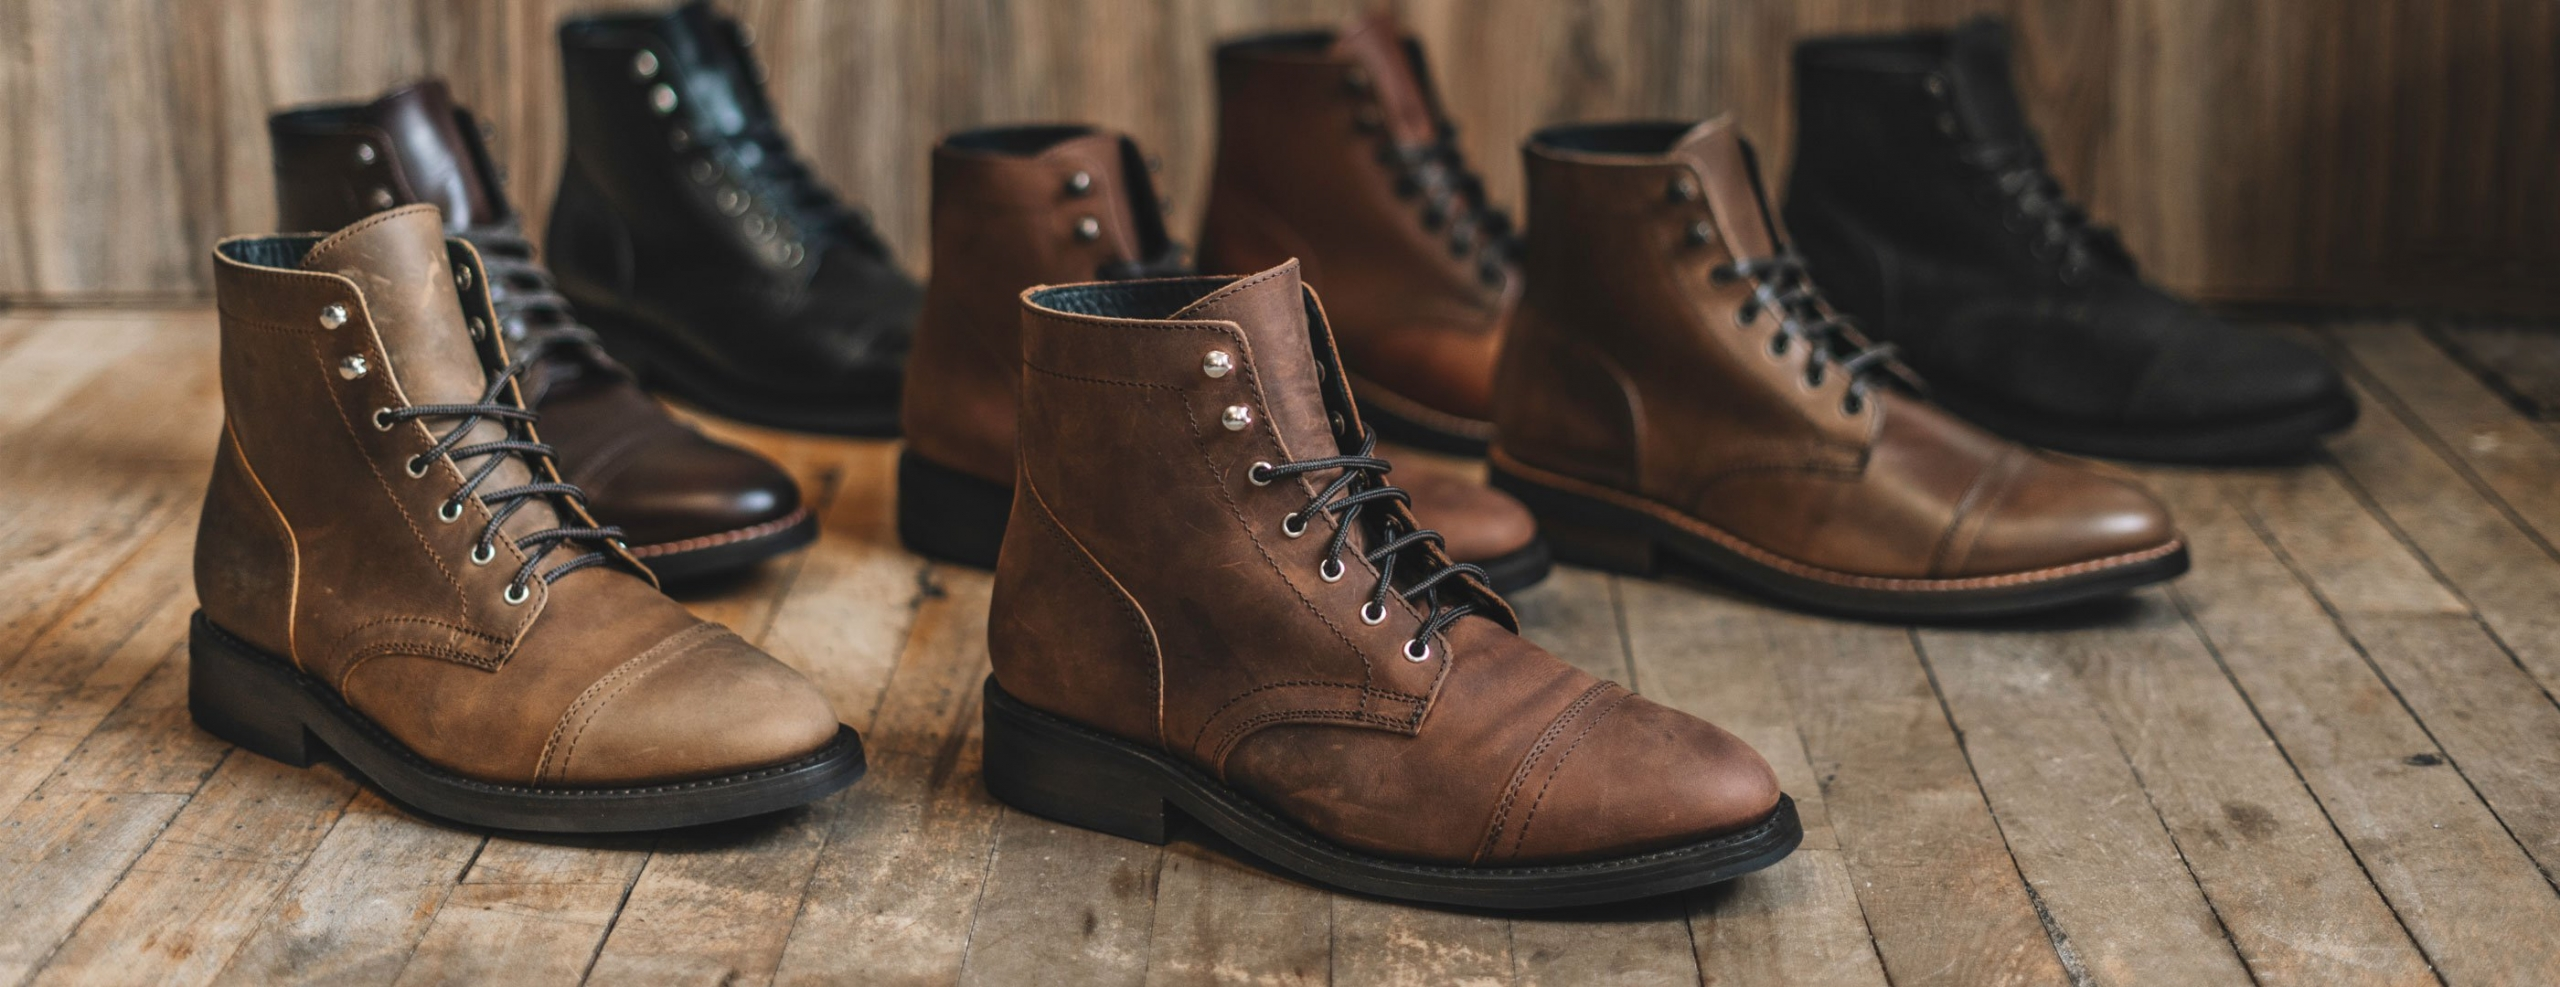 Best Men's Boots – 7 Reasons Boots Are Better Than Shoes By GentWith